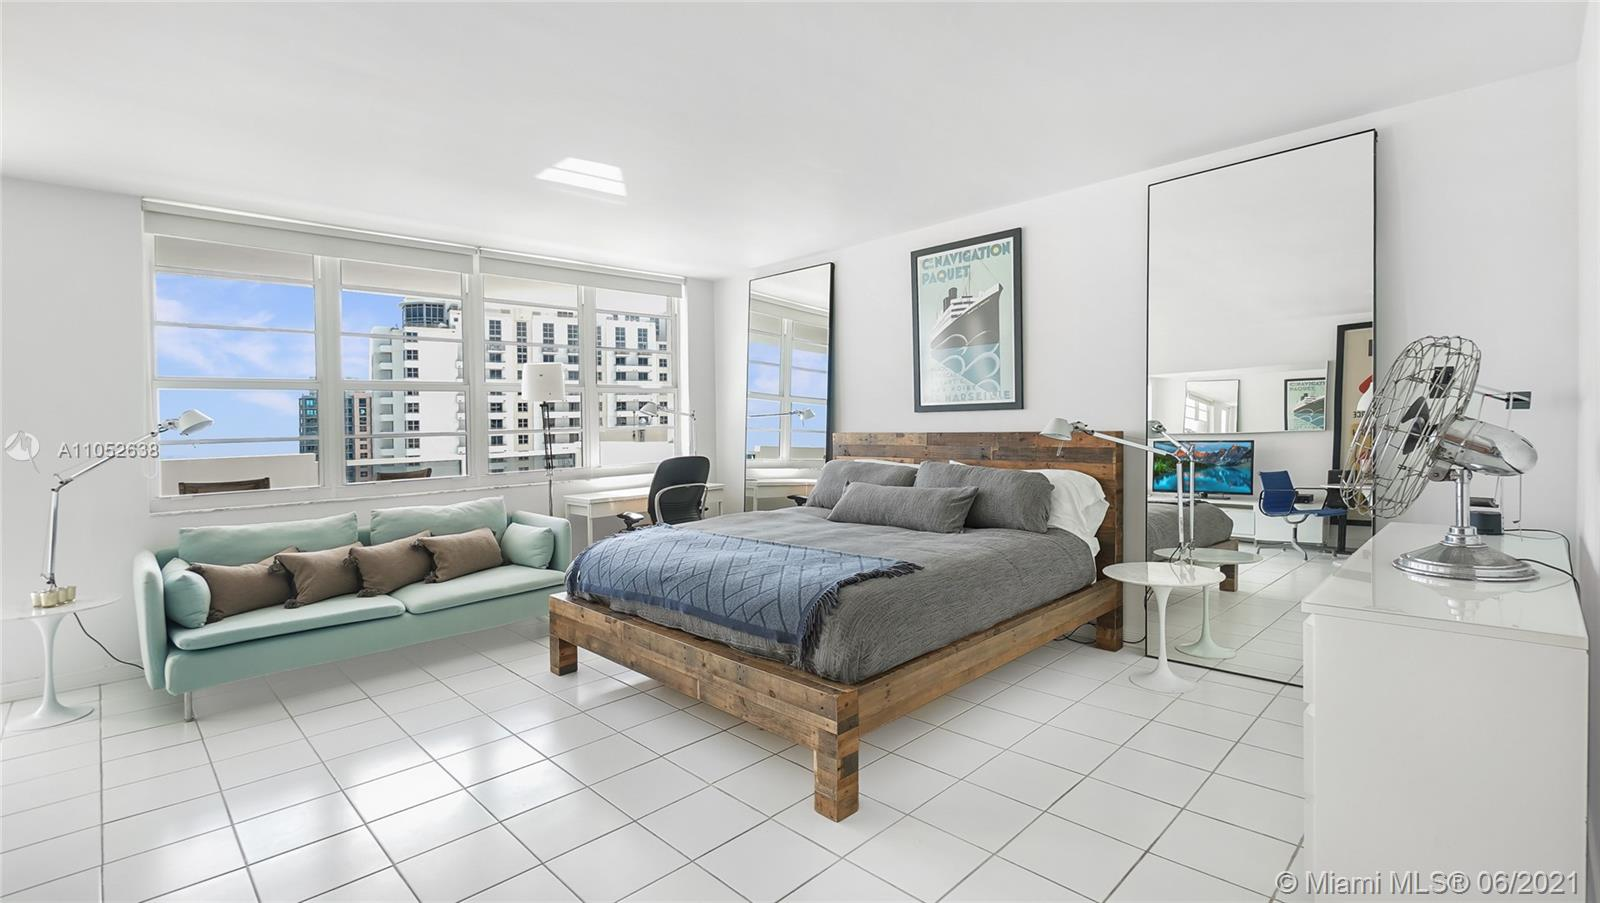 Stunning turnkey oceanfront loft-like studio with forever ocean views. This renovated high-floor unit is drenched in natural light from its desirable southern exposure. Complete with a large private balcony, renovated kitchen with stainless steel appliances, Caesarstone countertop, built-out closet, and tile floors throughout.  Located in the Decoplage, a luxury condo set in the heart of SoBe that allows short term rentals, making this a great pied-à-terre or investment. The building has just undergone extensive façade work, installation of impact windows, a lobby redesign, and renovation of the elevators, heated pool, fitness center, recreation room, business center, club room & laundry facilities. Maintenance includes A/C, Internet, and 1 valet parking space. Assessments paid in full.